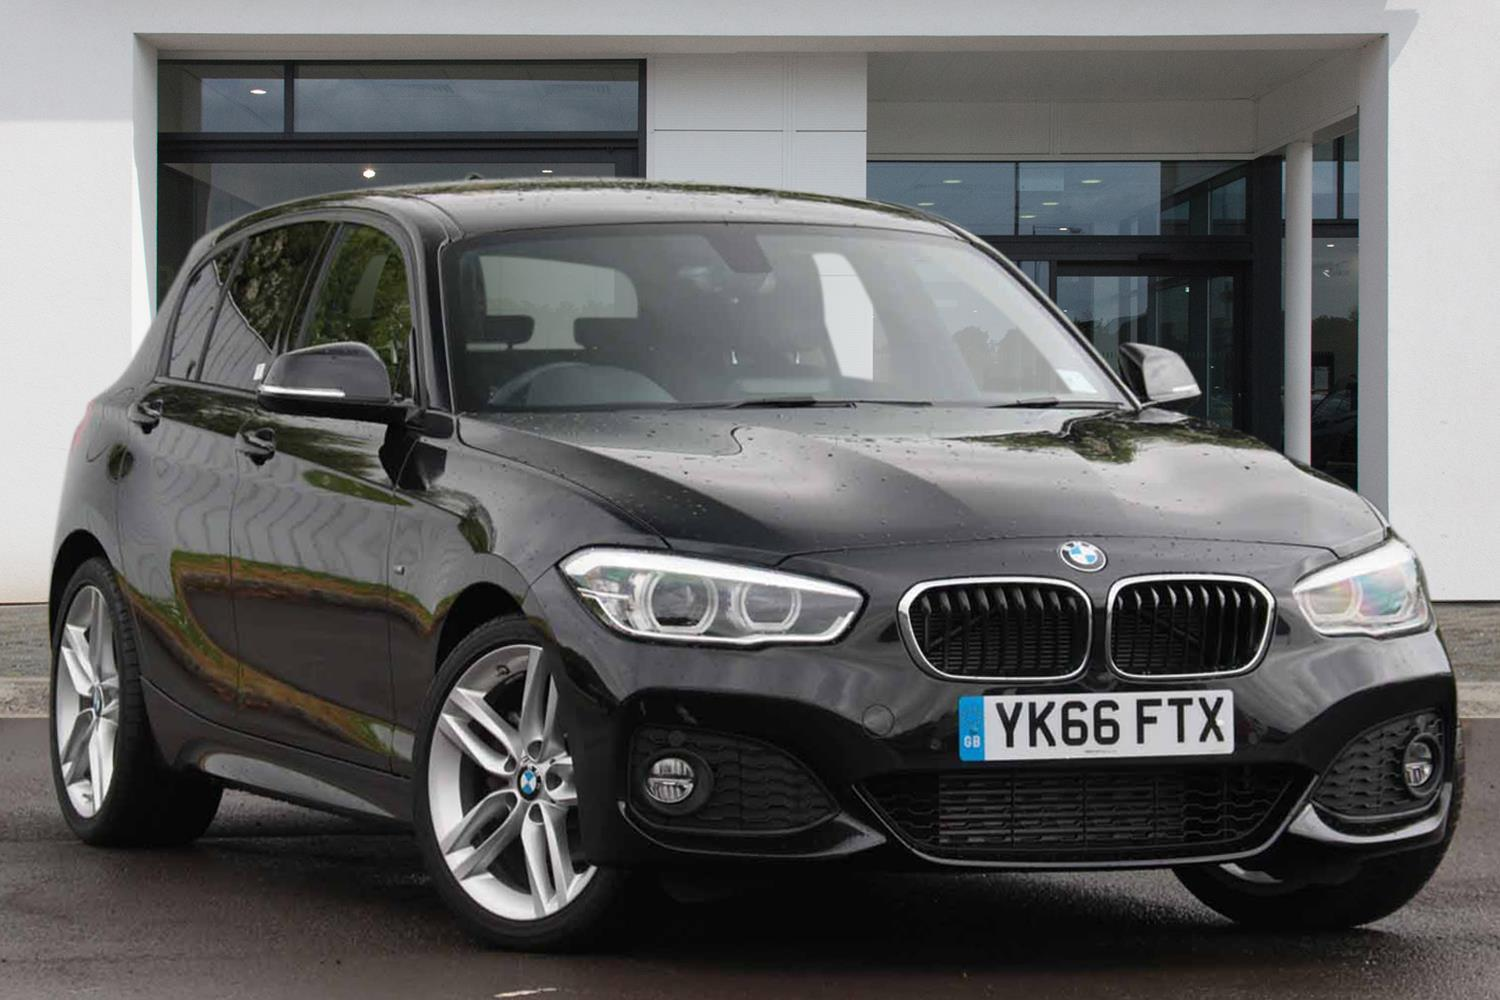 BMW 1 Series 5-door Sports Hatch YK66FTX - Image 7